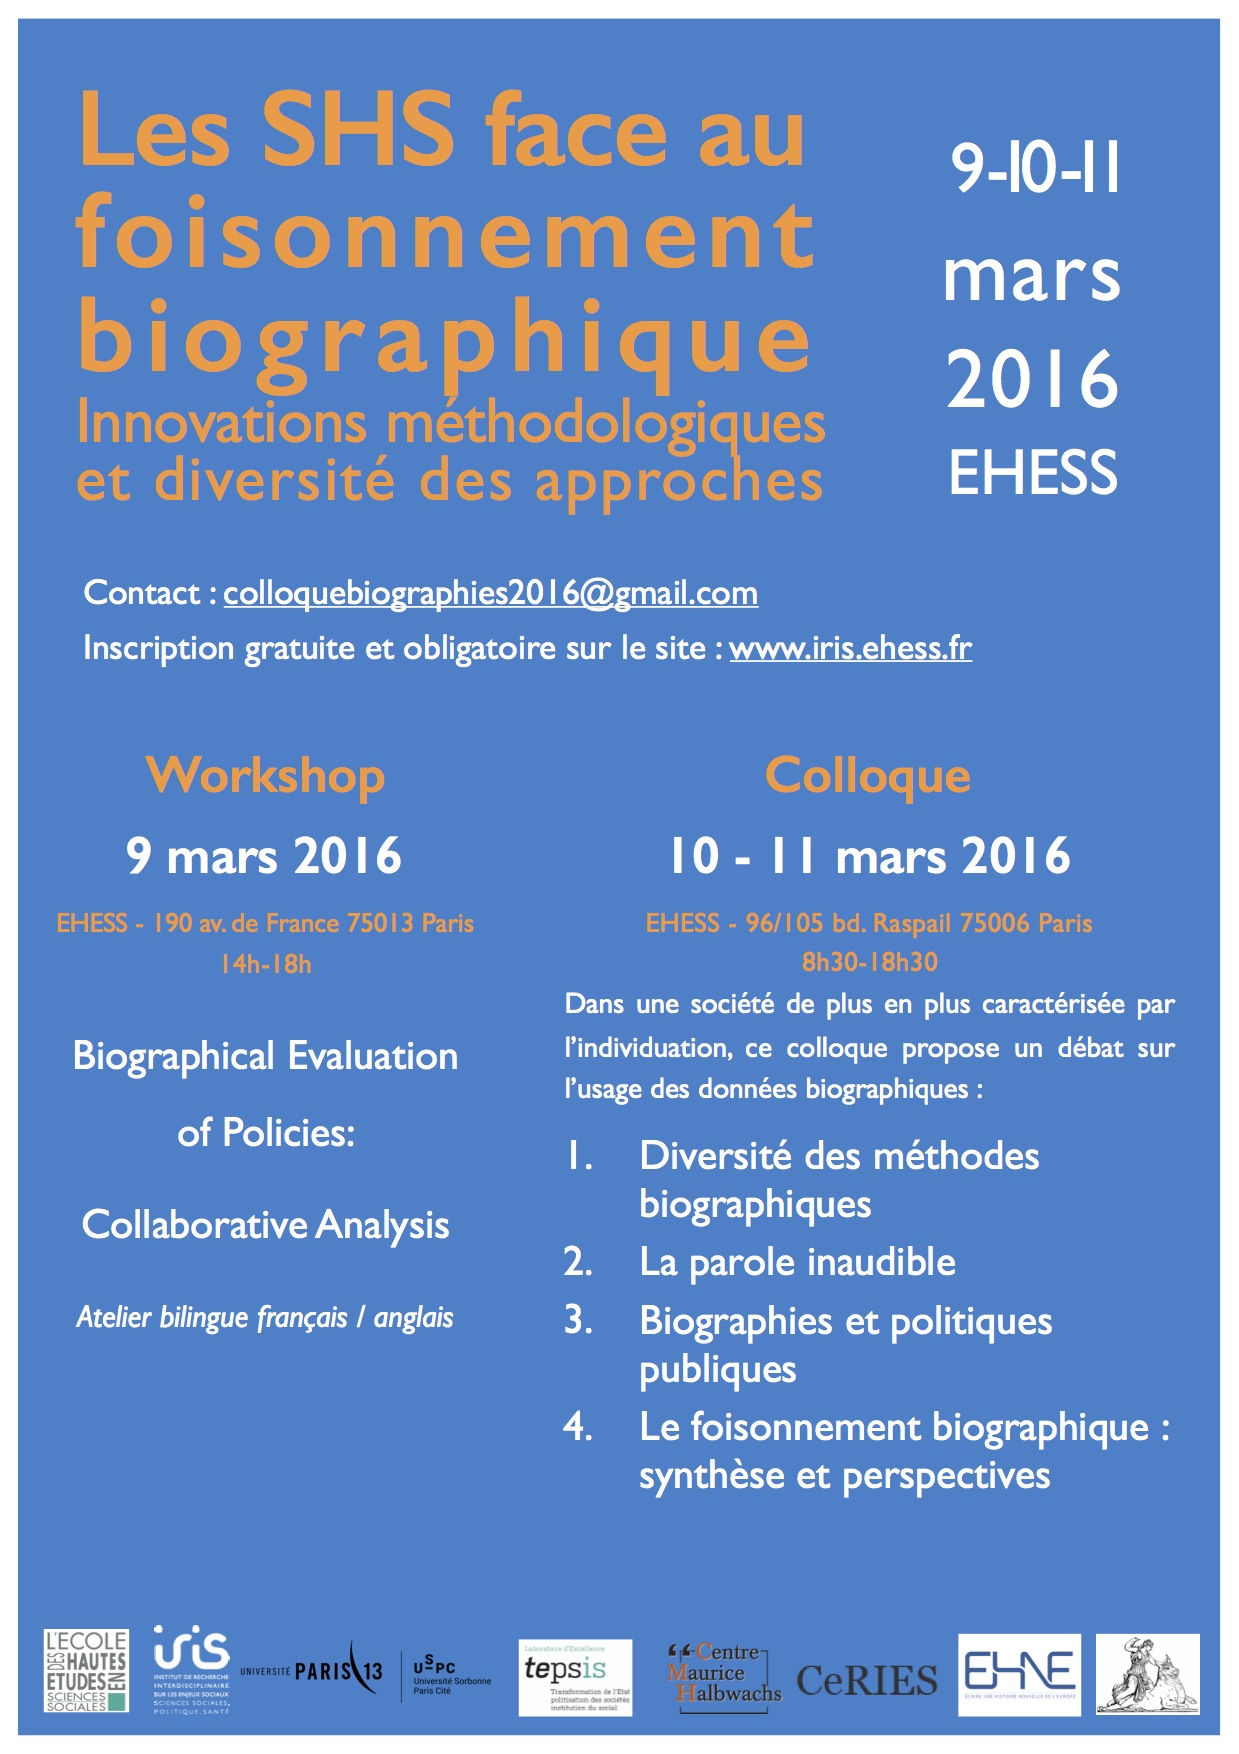 Colloque & Workshop > Les SHS face au foisonnement biographique, 9-11 mars 2016